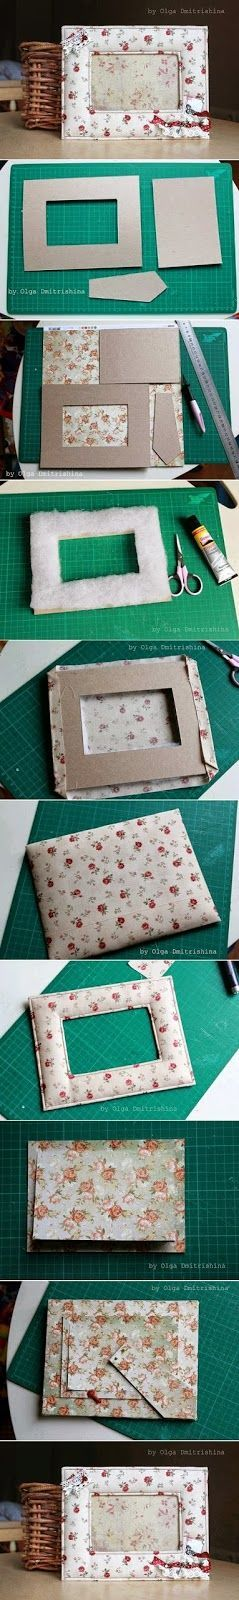 My DIY Projects: Easy Way To Make a Picture Frame: